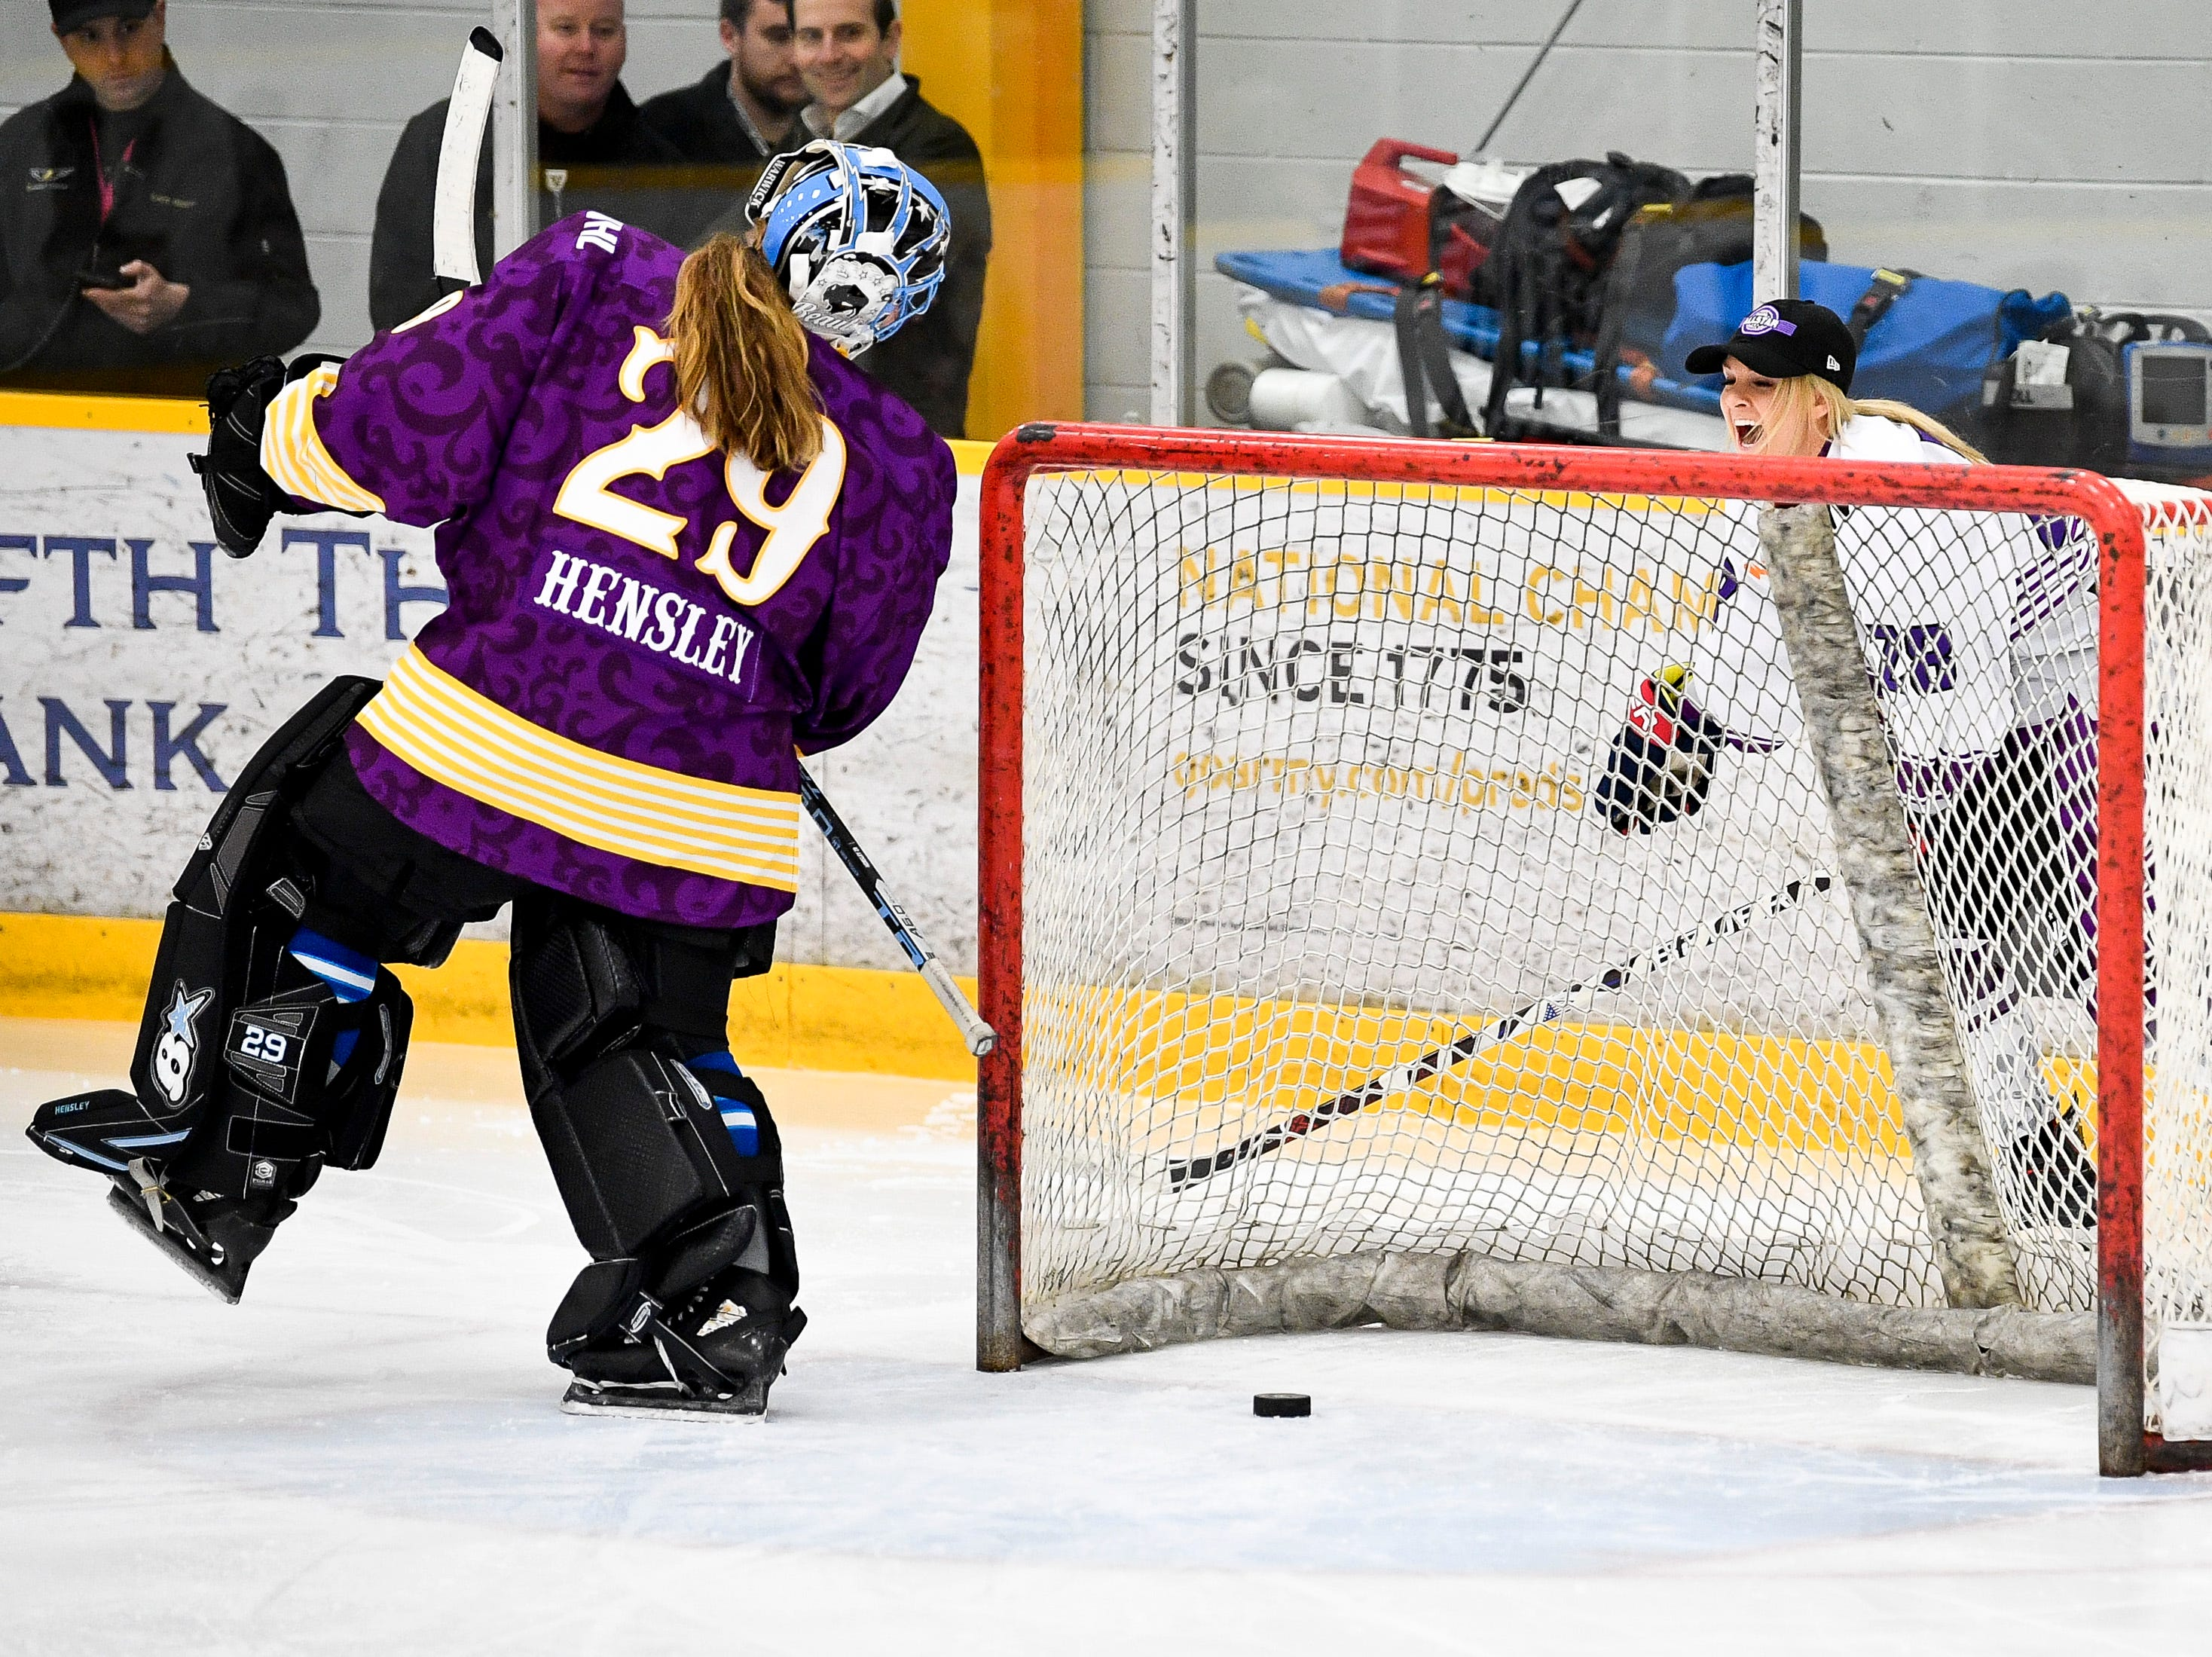 Amanda Kessel scores against Nicole Hensley in the trick shot challenge during the 2019 NWHL All-Star Weekend Skills Competition at Ford Ice Center in Antioch, Tenn., Saturday, Feb. 9, 2019.